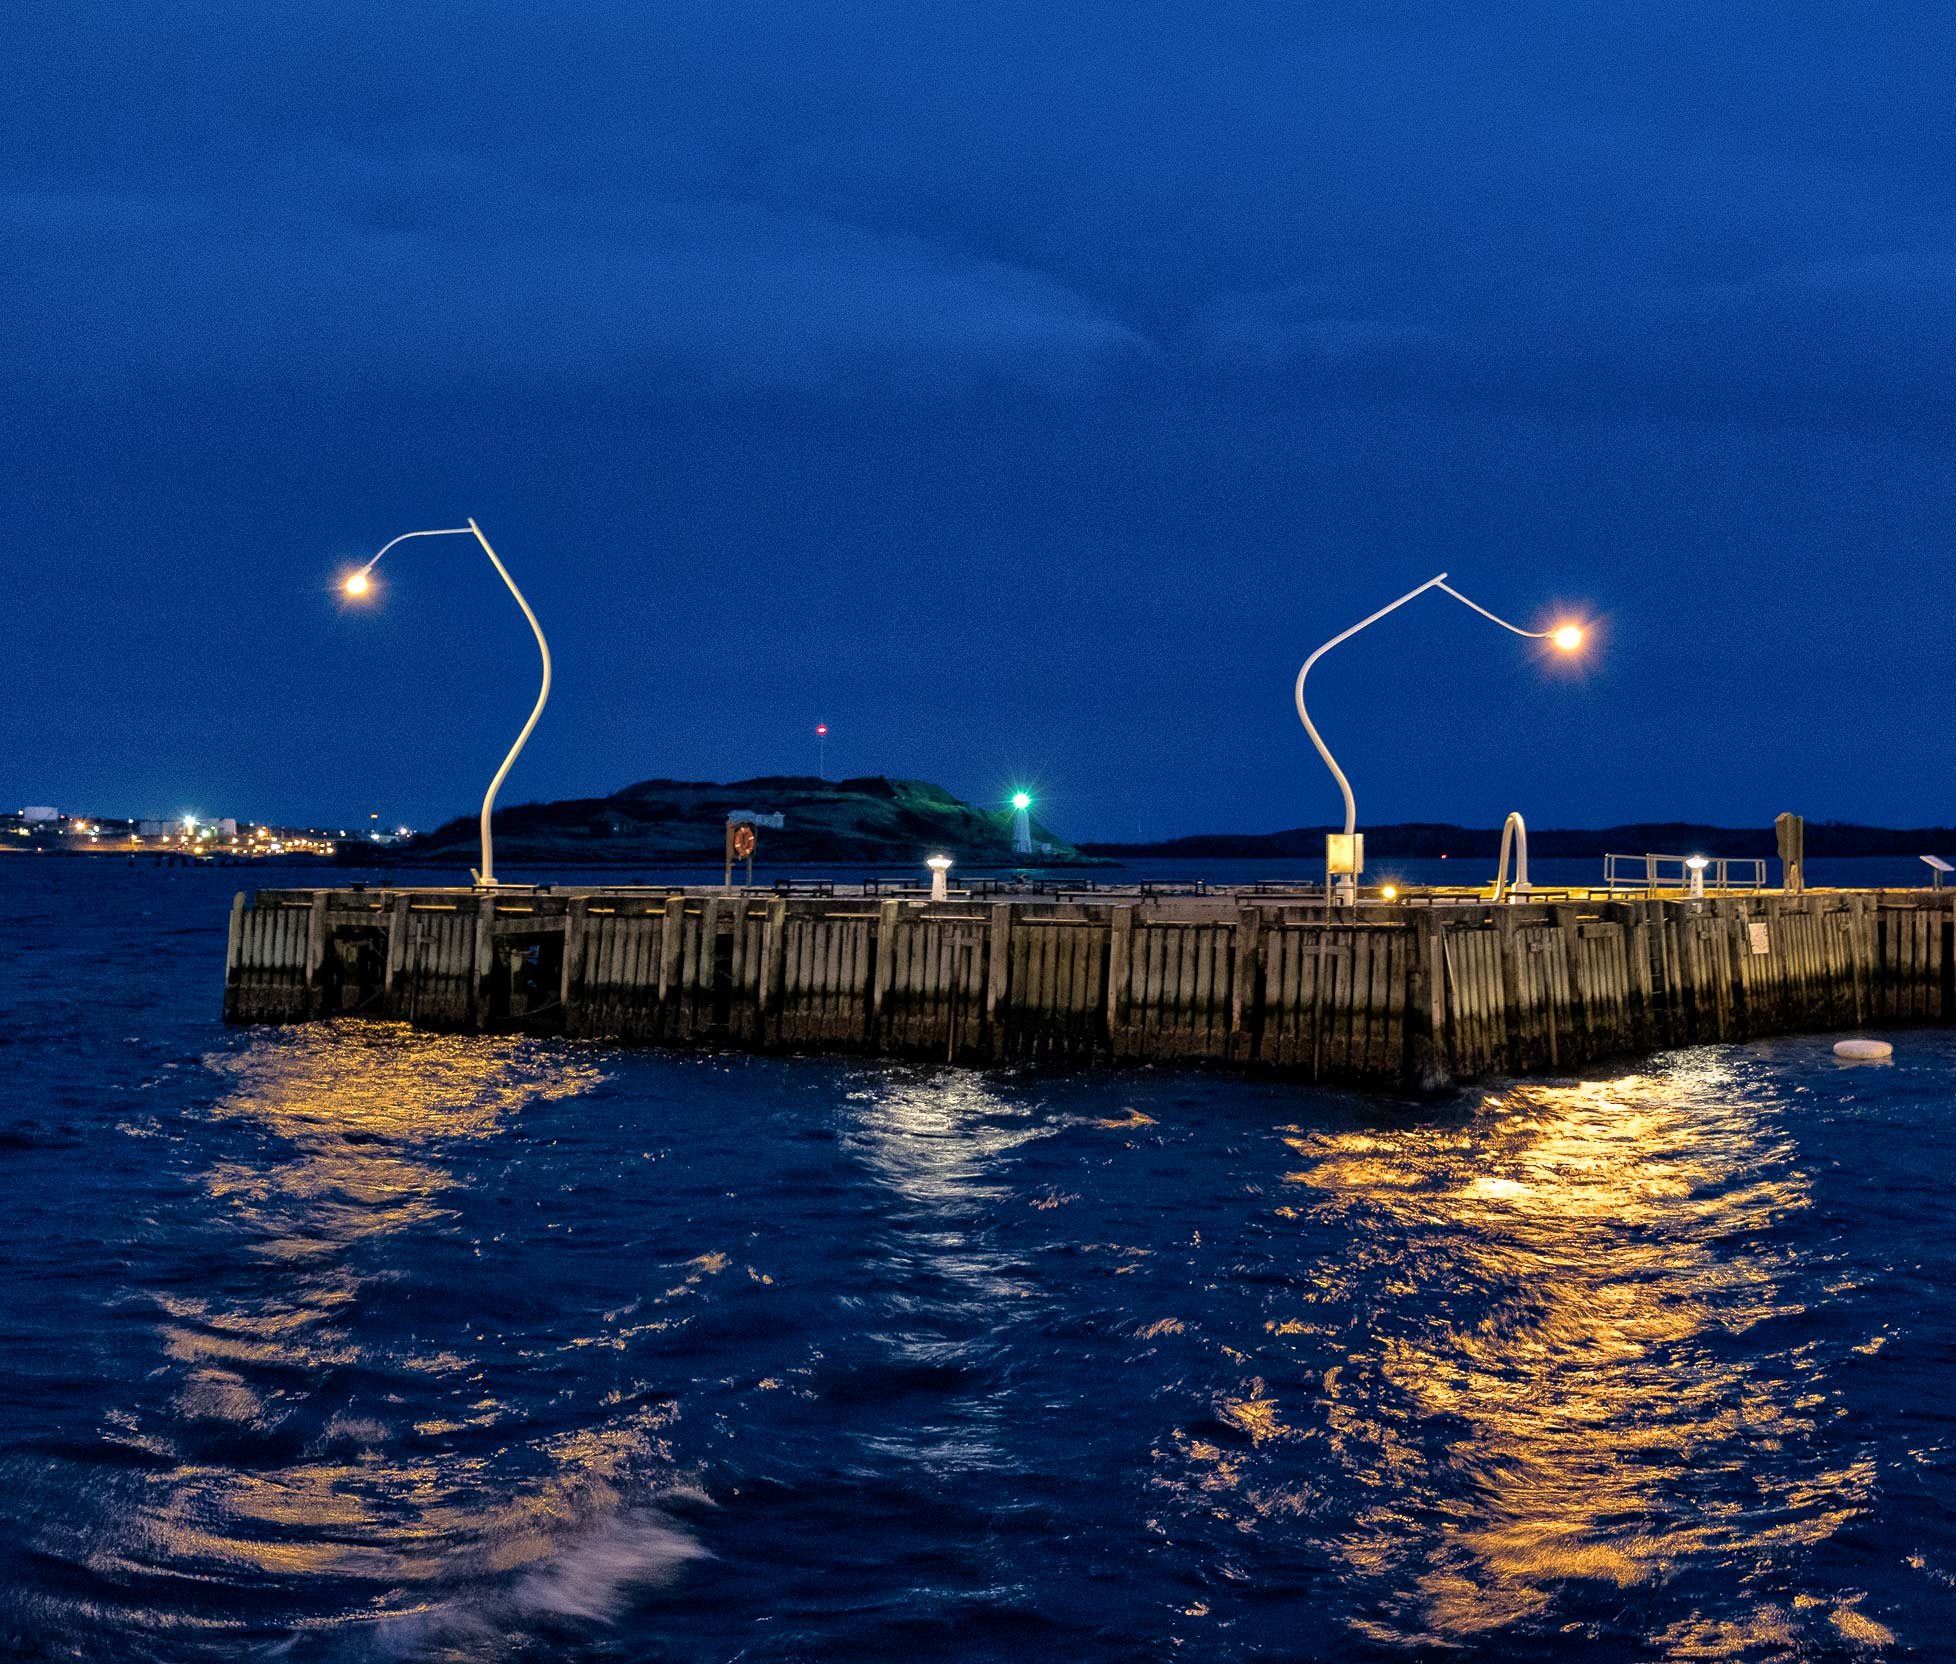 Night Photography at the Dockyards and Pier